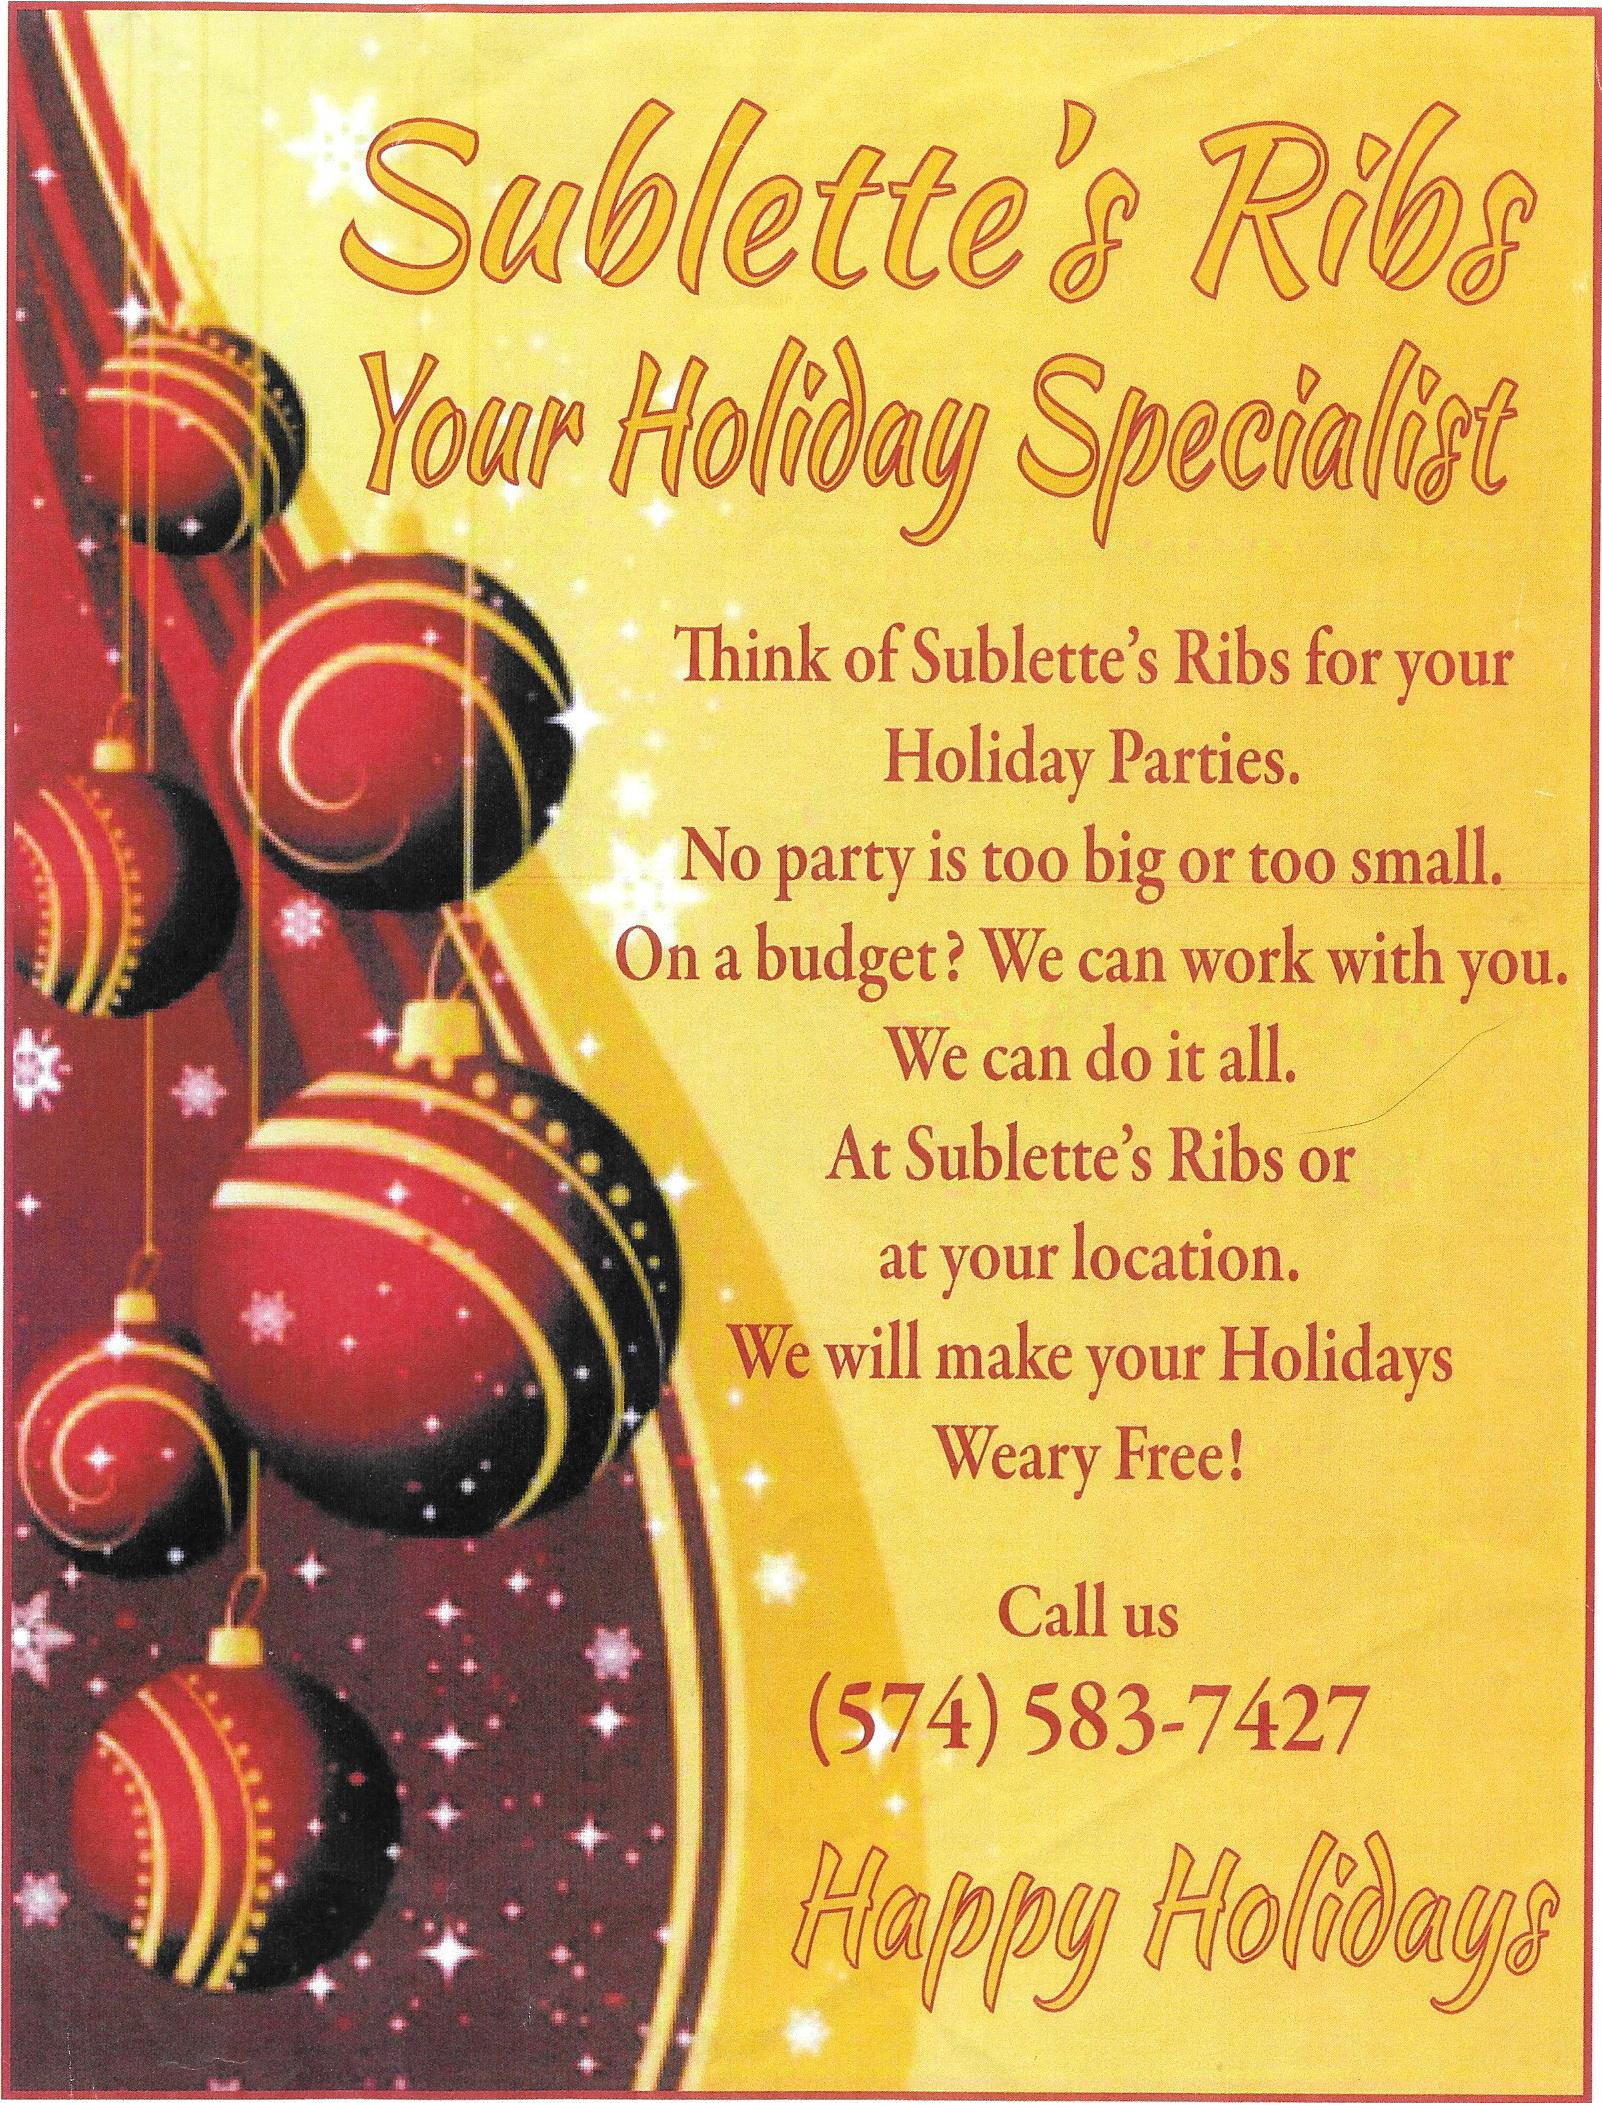 Flyer for Sublette's Ribs Holiday Specialist. Think of sublette's ribs for your holiday parties. no party is too big or too small. on a budget? we can work with you. we can do it all. at sublette's ribs or at your location. we will make your holidays weary free! call us at 574-583-7427.